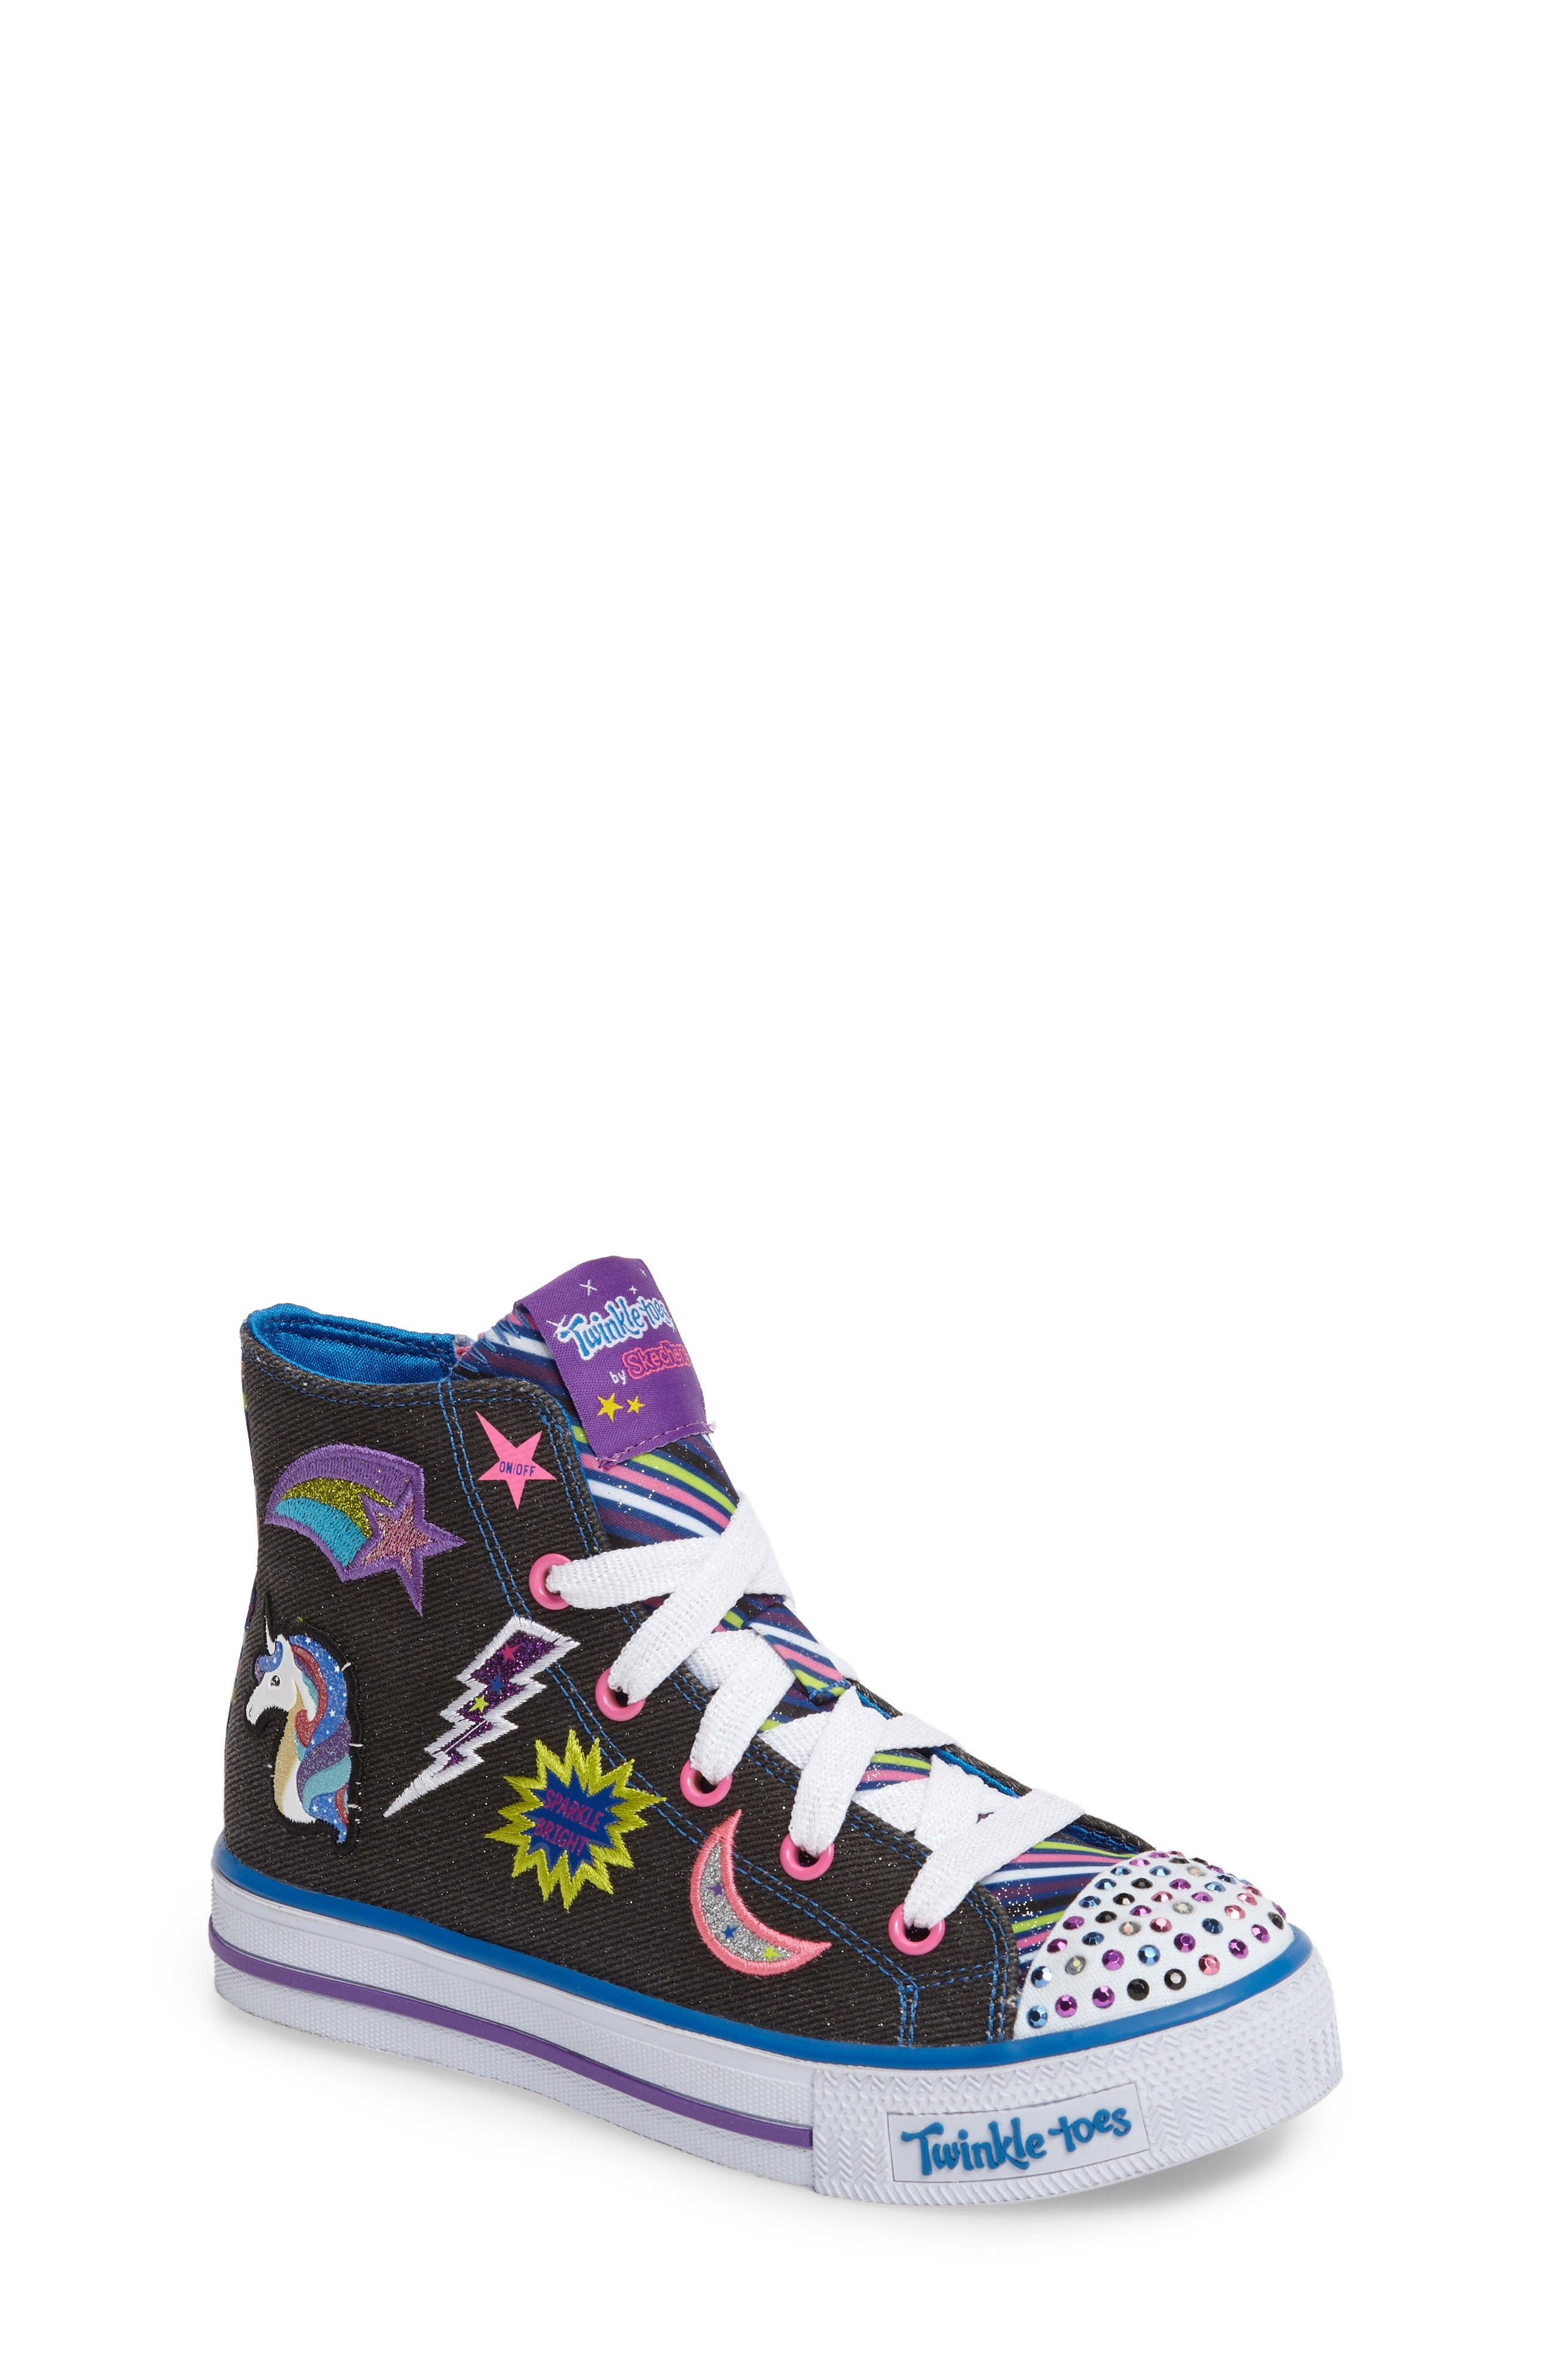 Twinkle Toes Shuffles Light-Up High Top Sneaker,                             Main thumbnail 1, color,                             Black Canvas